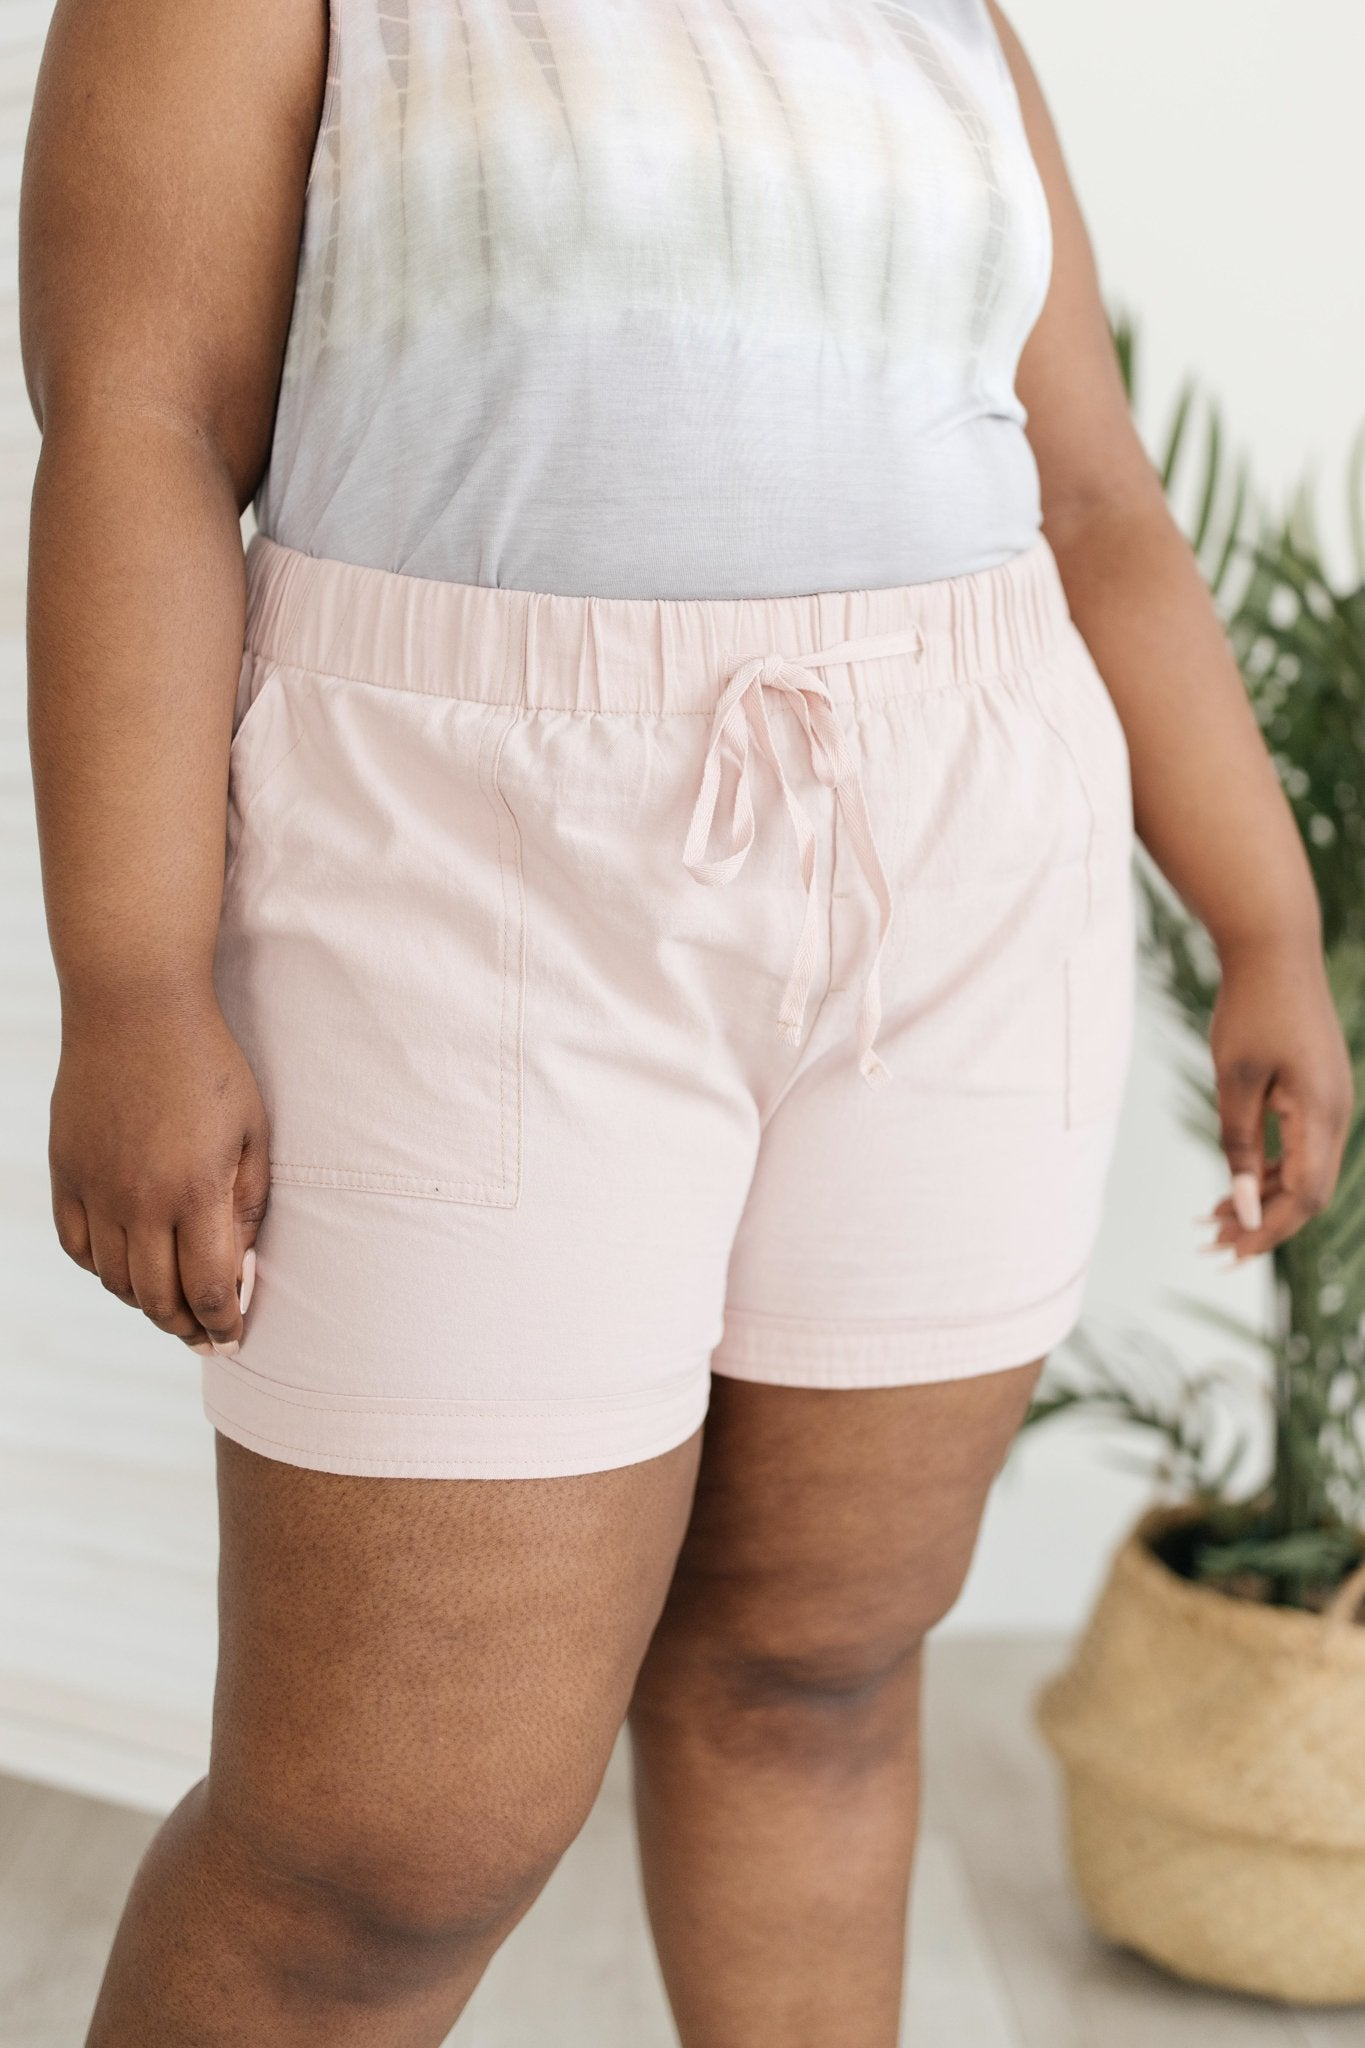 Lightweight and Linen Shorts in Baby Pink-[option4]-[option5]-[option6]-[option7]-[option8]-Womens-Clothing-Shop